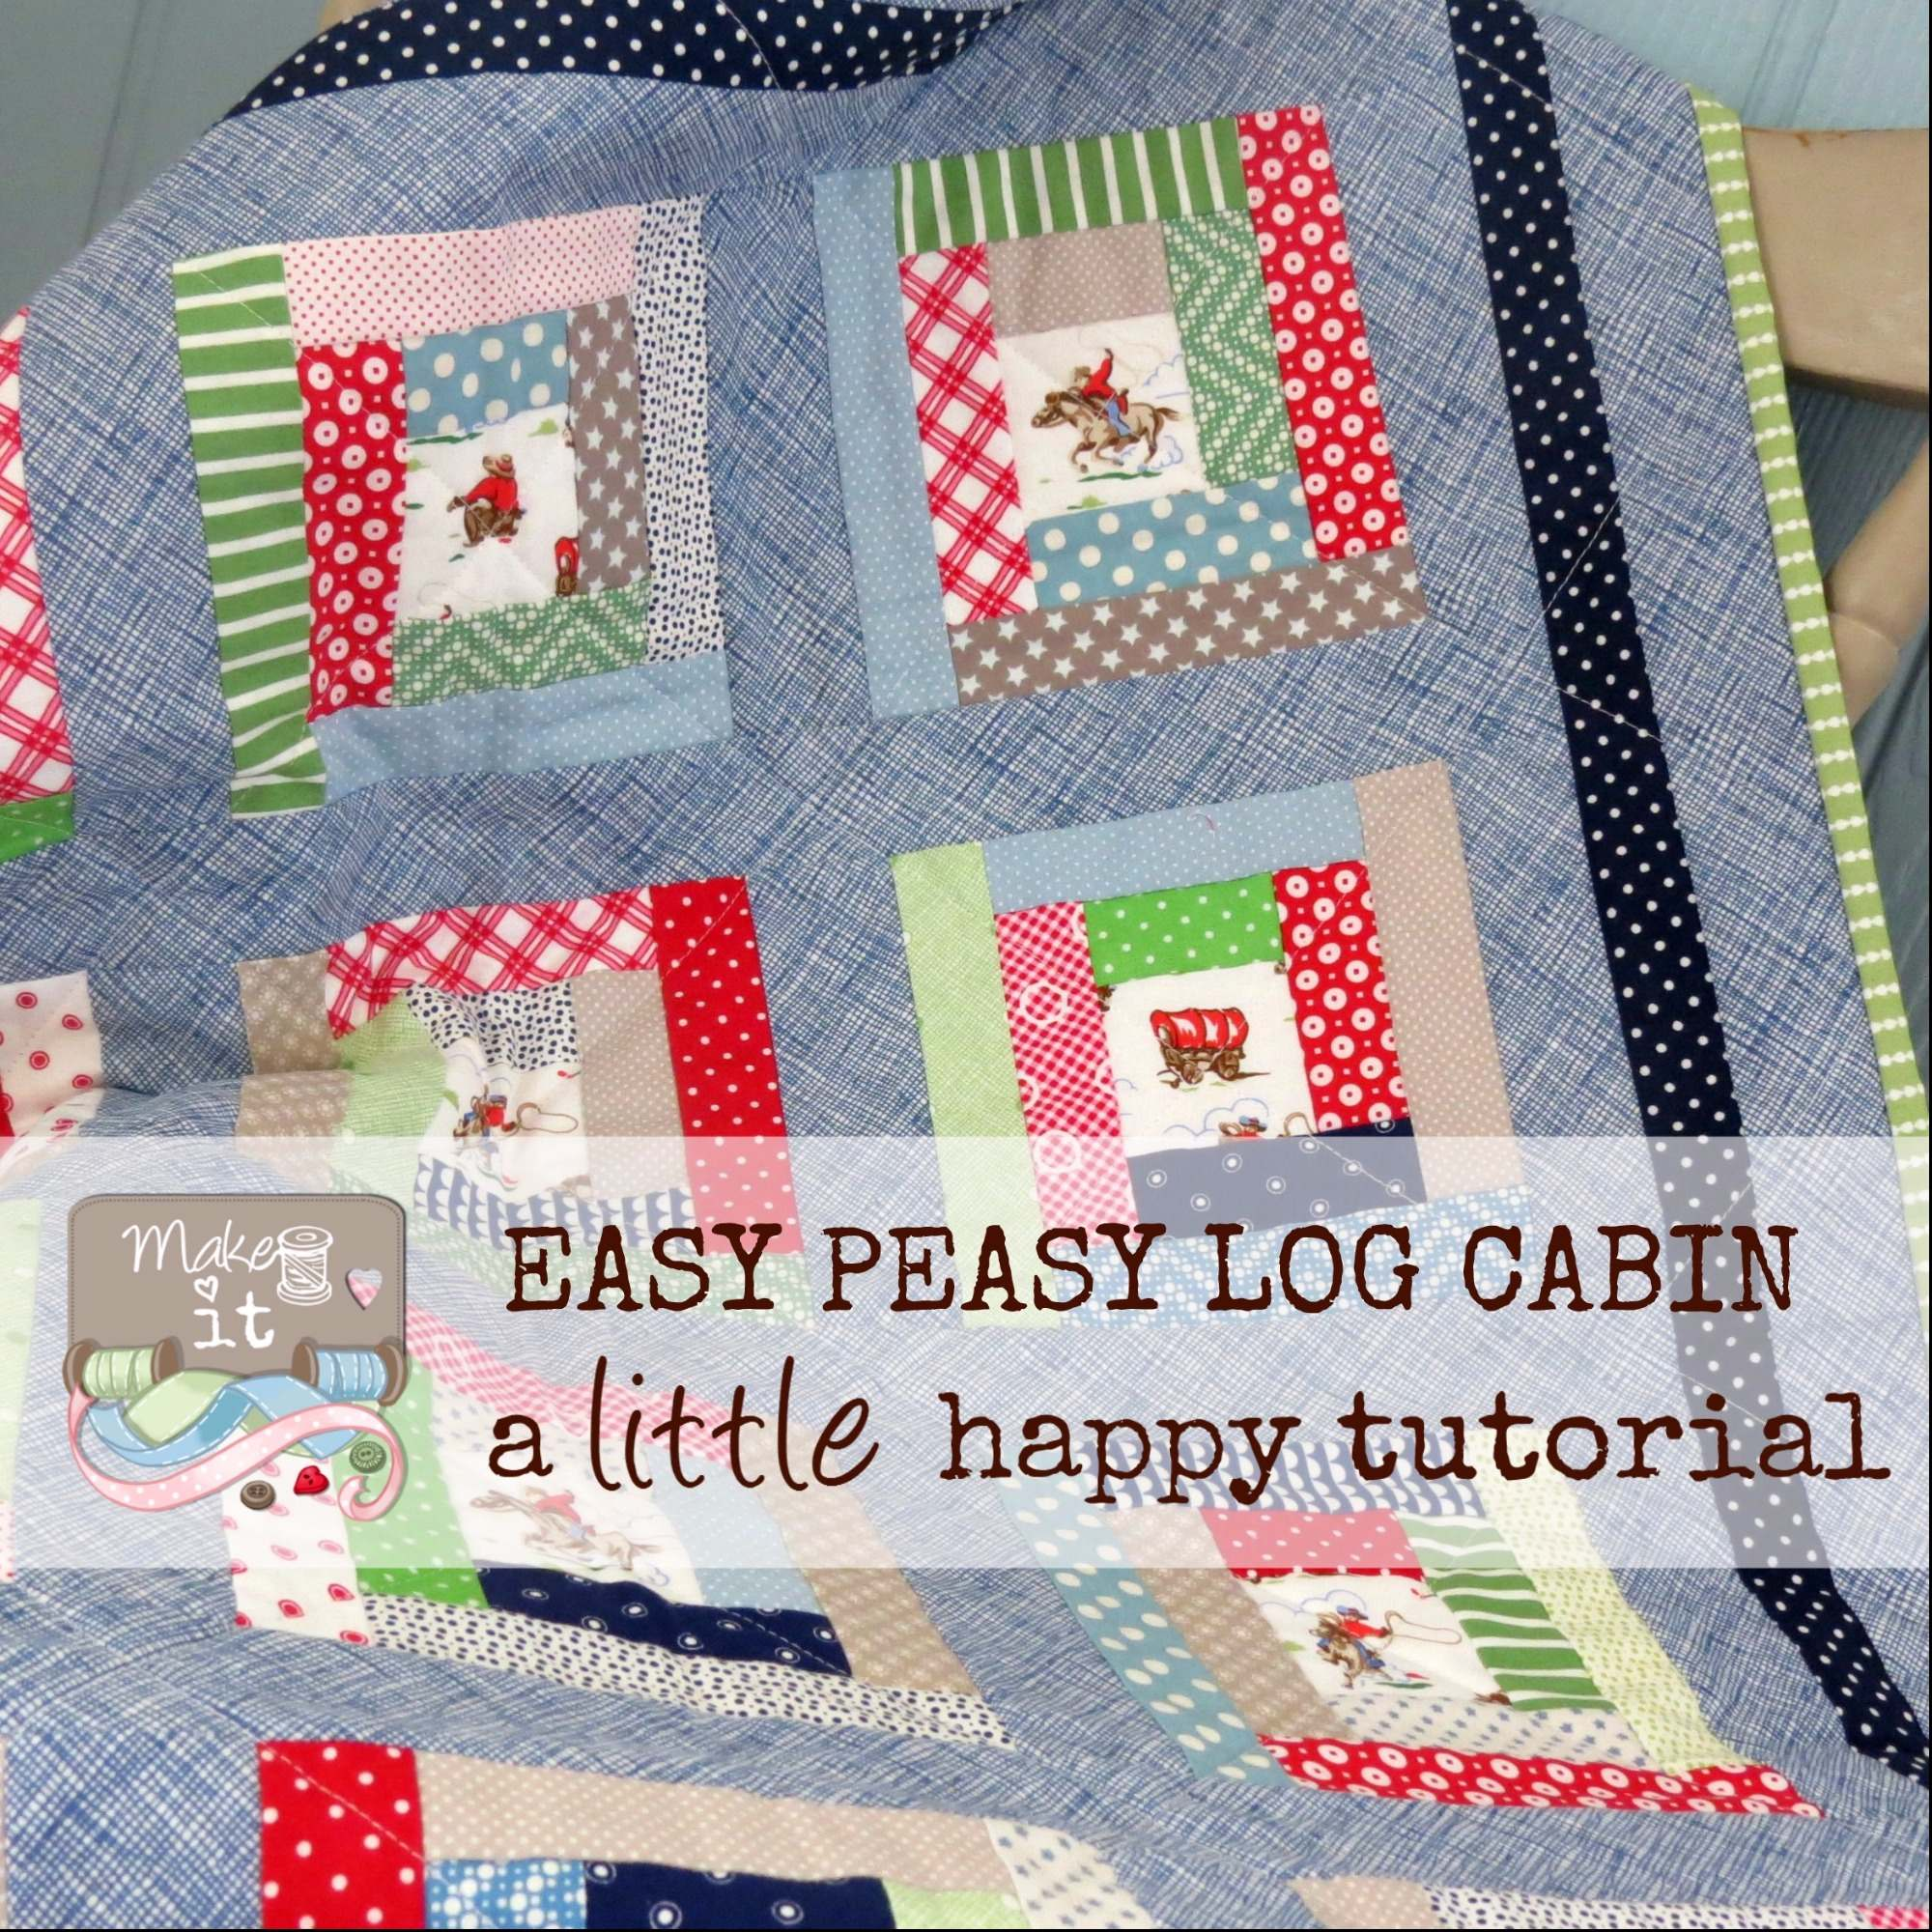 Make it Easy Peasy Log Cabin